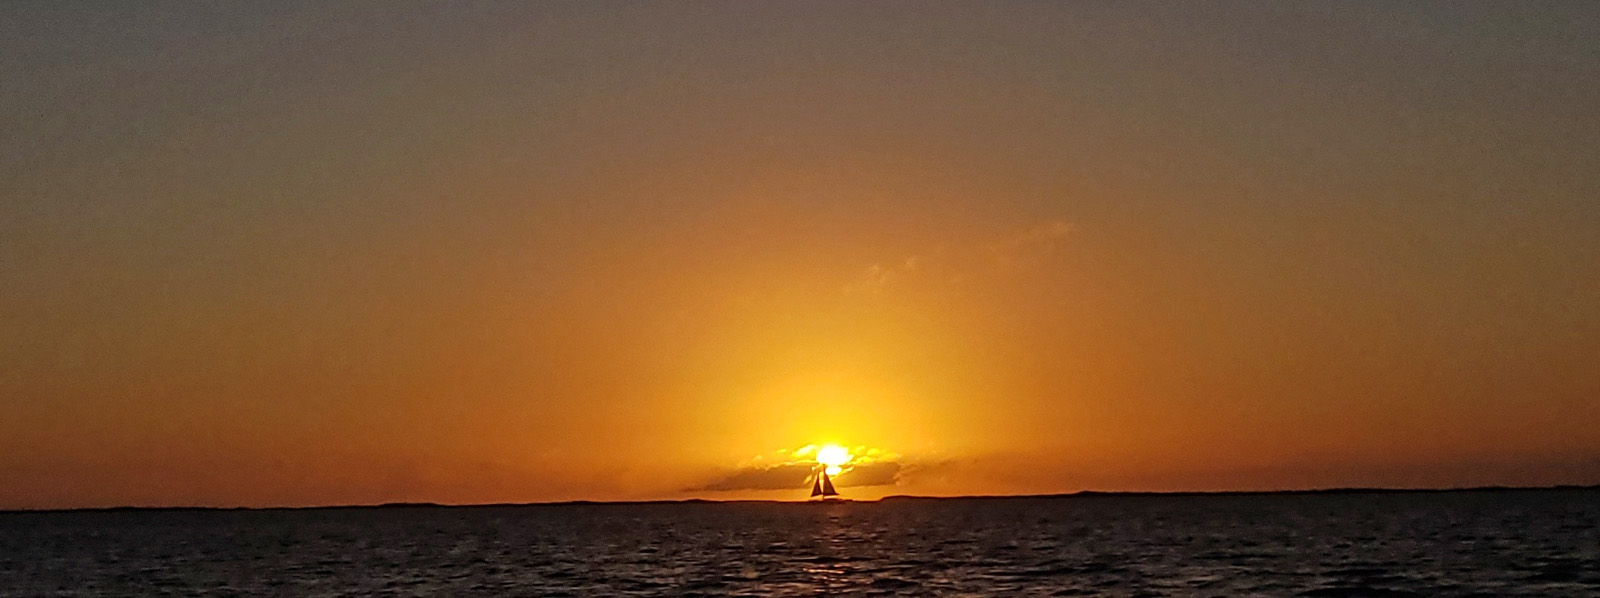 sunset on the ocean, Key Largo